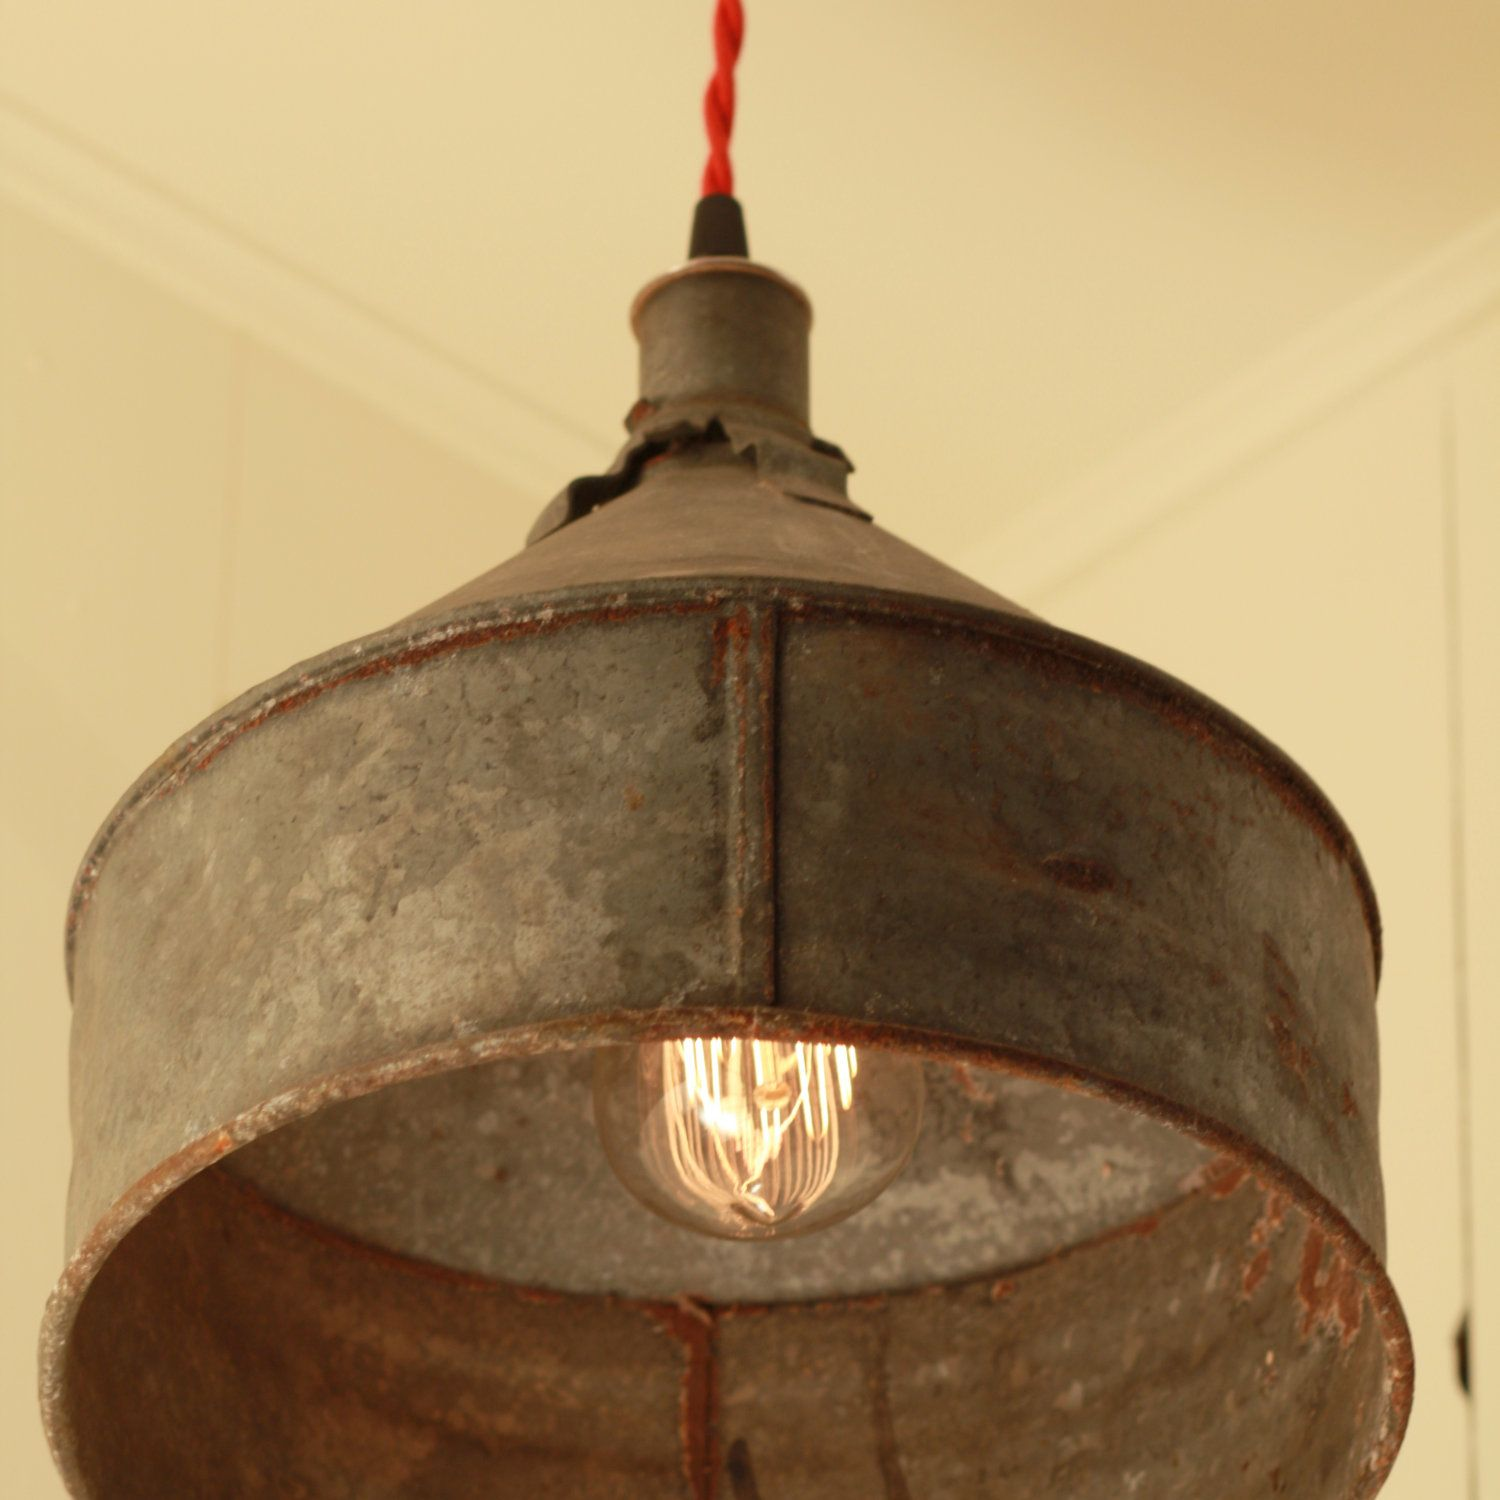 rustic kitchen lighting RESERVED for Jacquidowd Rustic Lighting with Vintage Rustic Funnel Shade Pendant